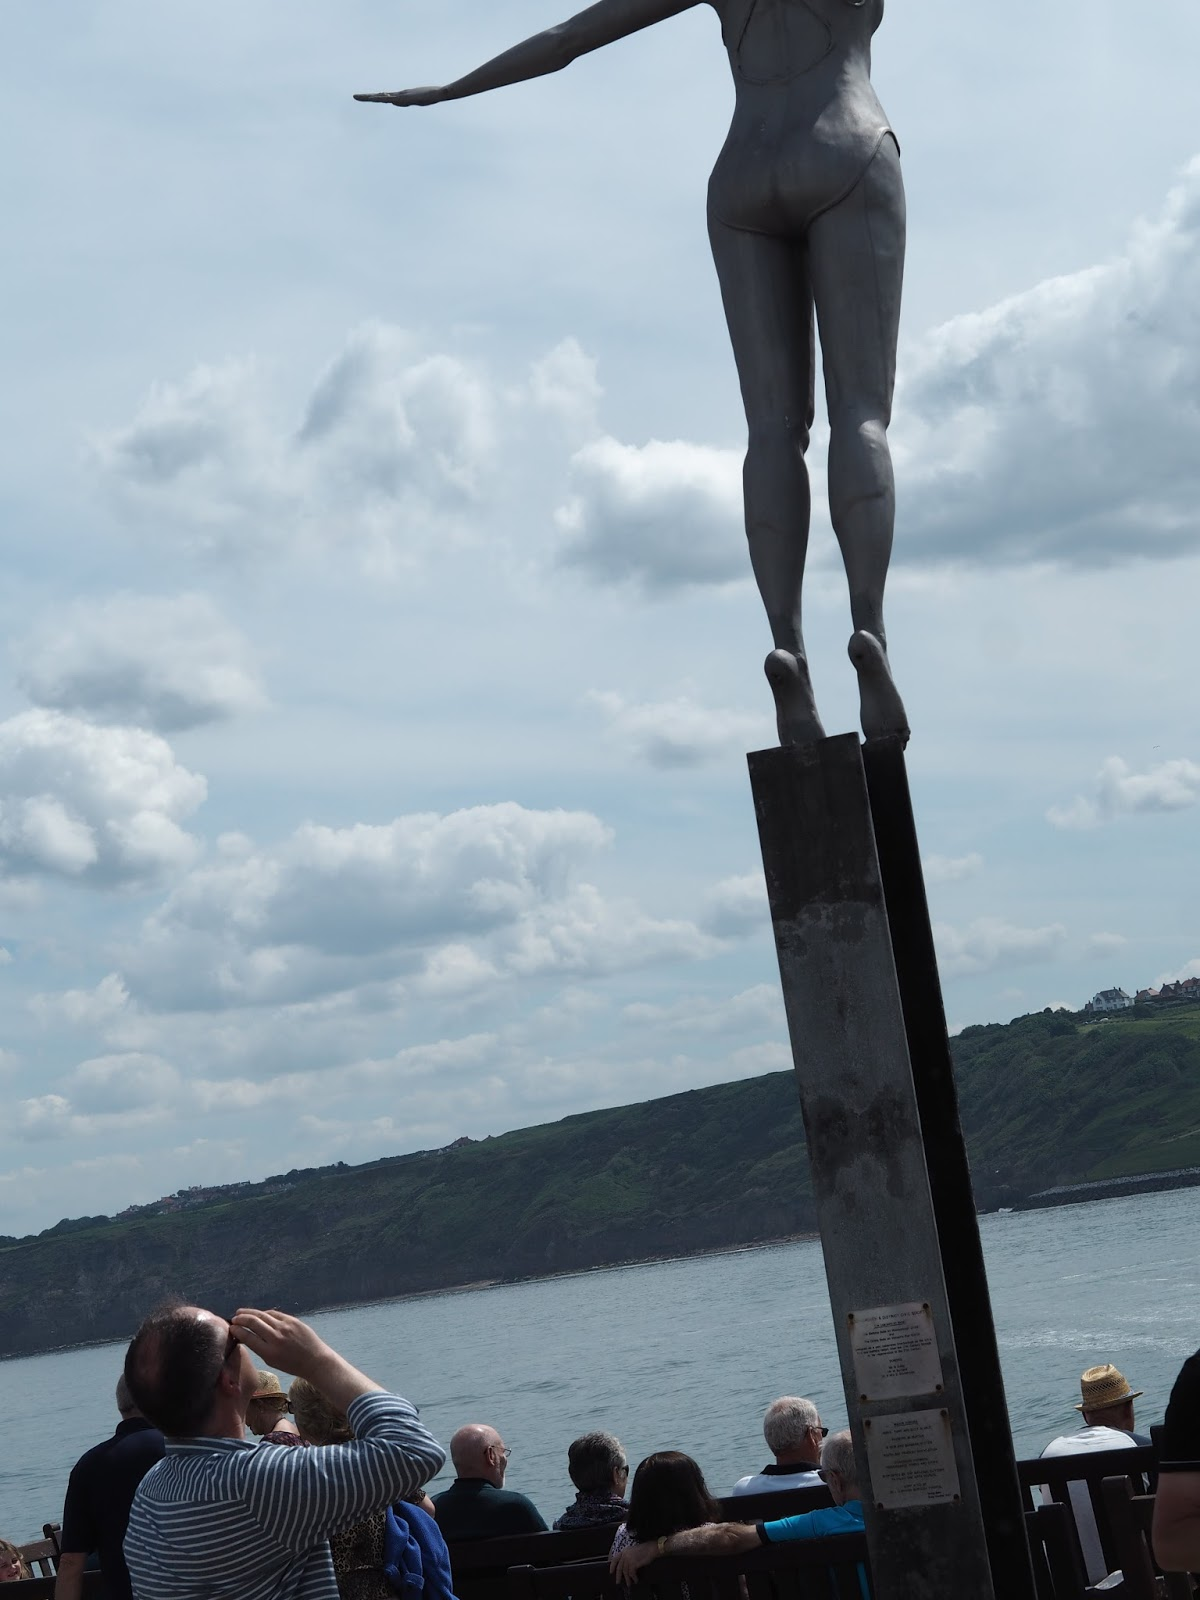 Diving Belle, diving statue, sculpture Vincents Pier, South Bay, Scarborough